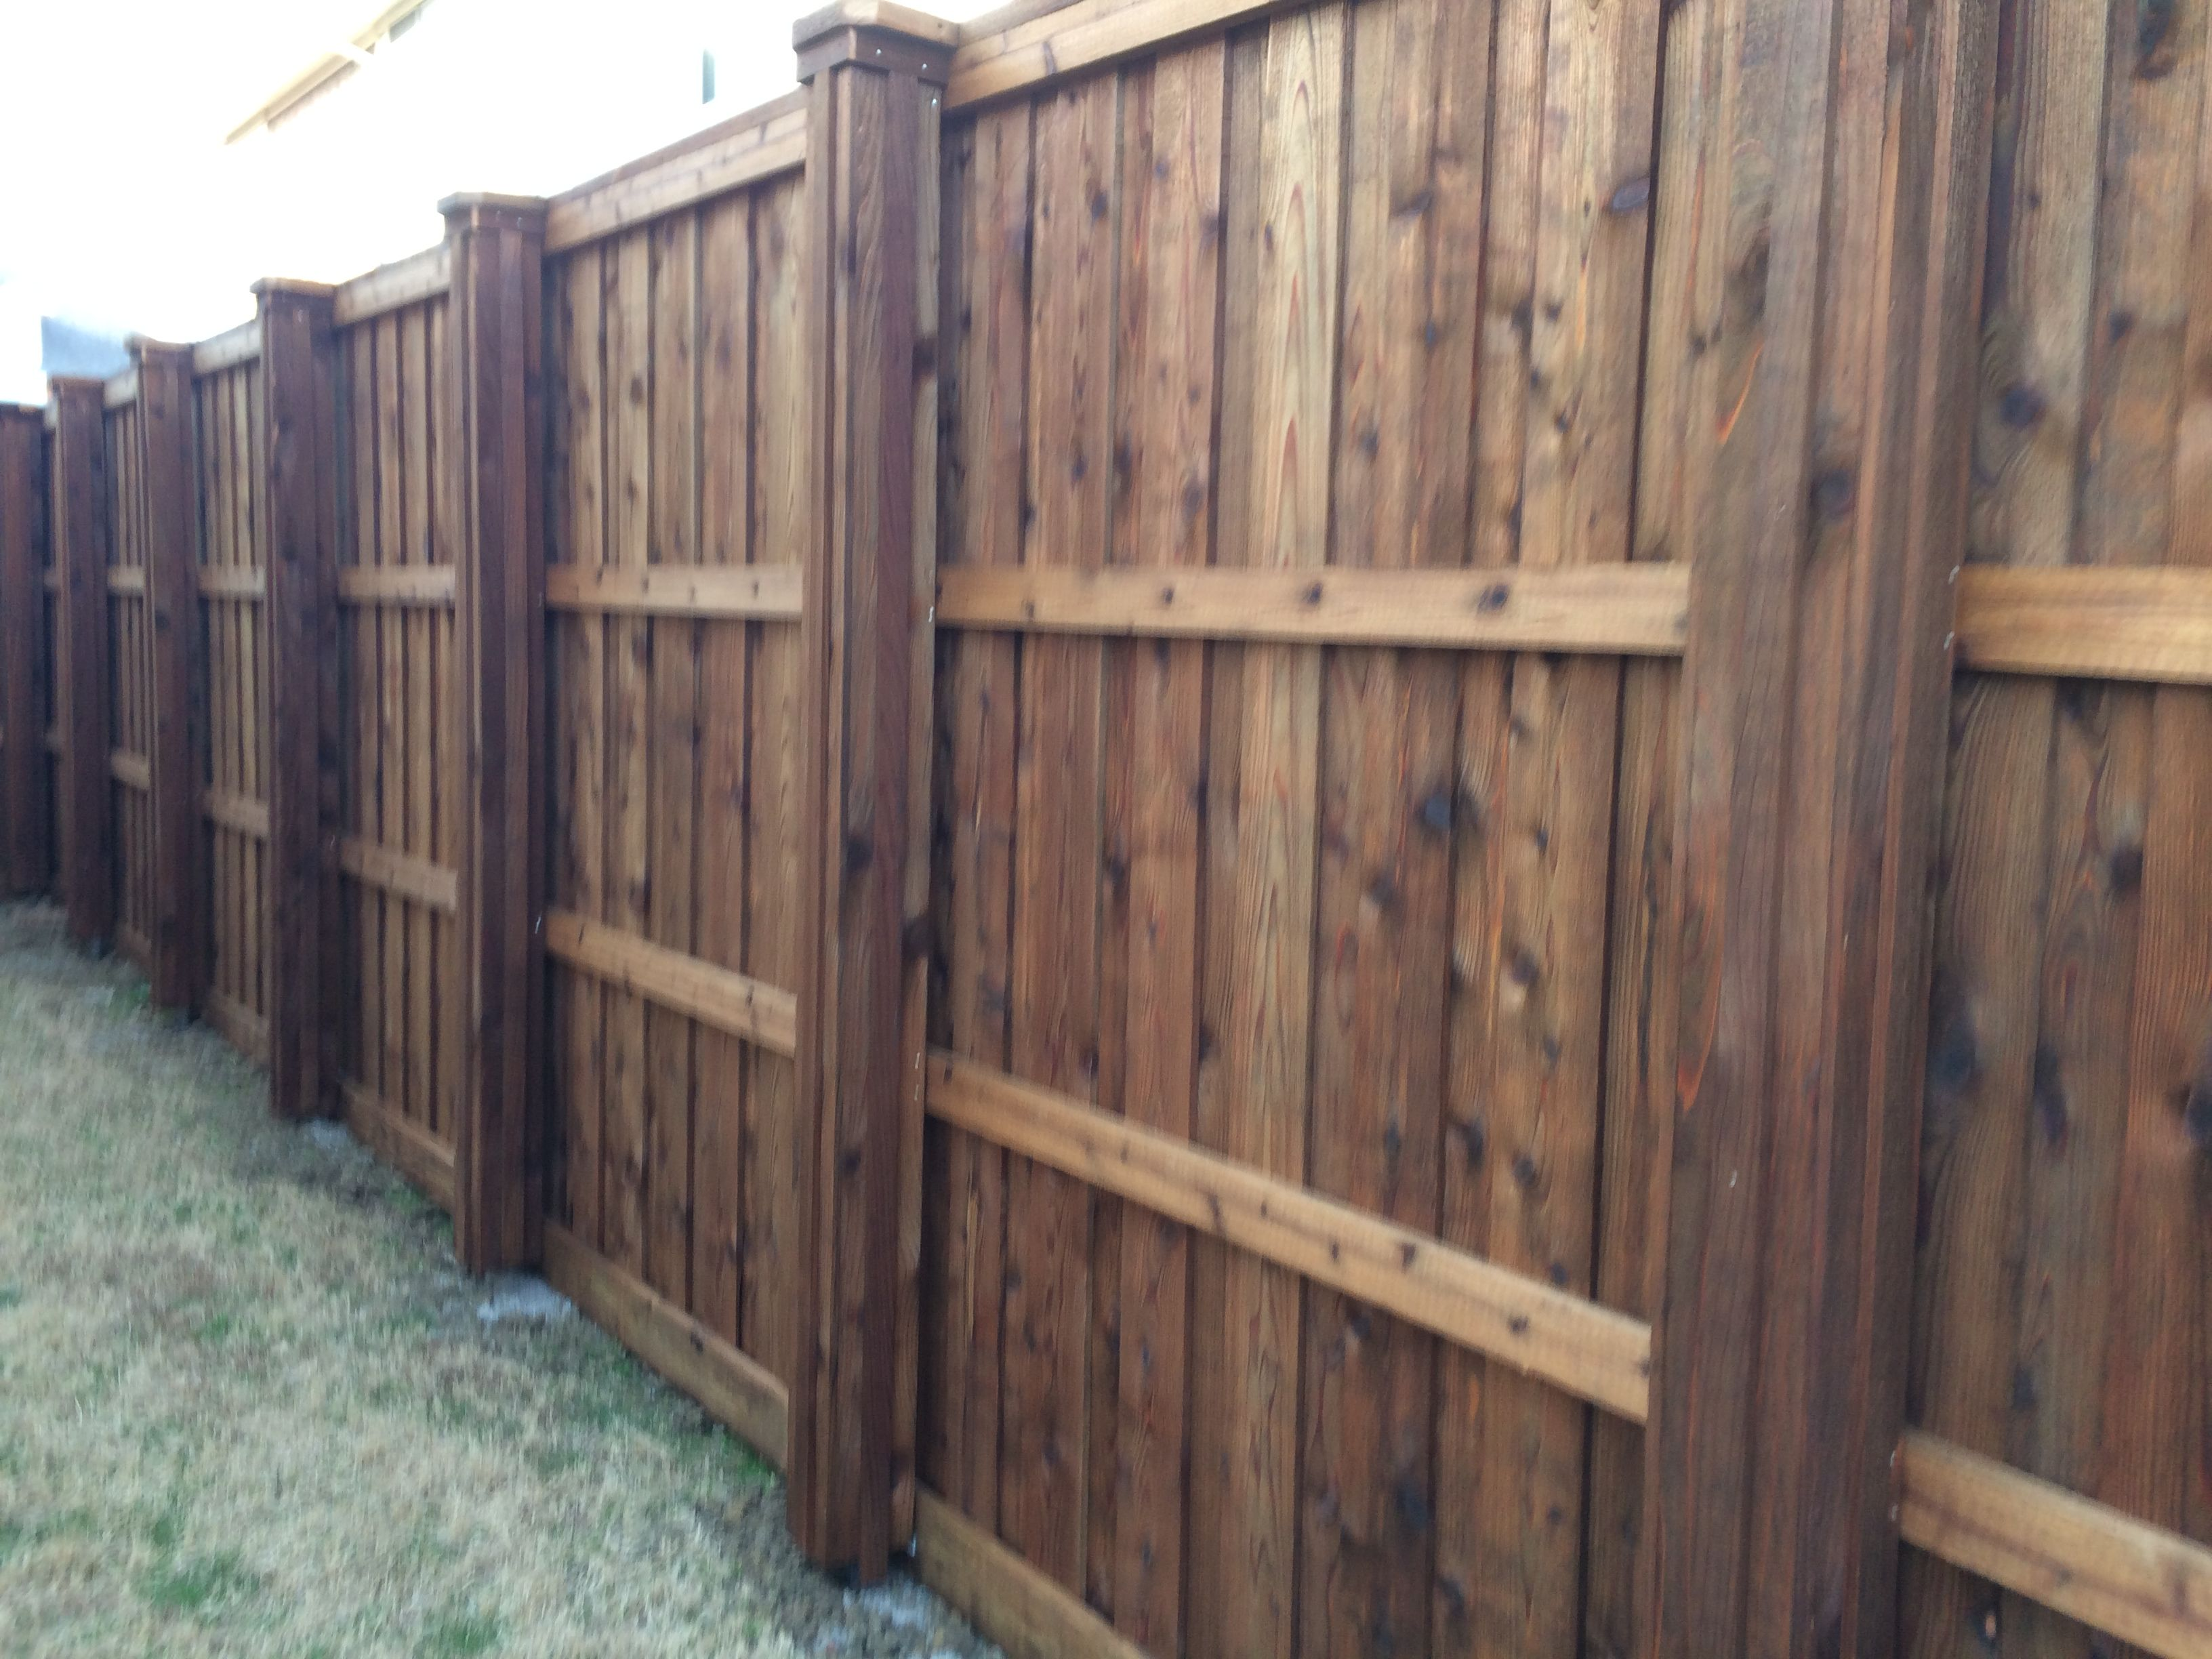 Privacy Fence W Boxed In Metal Posts Wood Fence Post Metal Fence Posts Wrought Iron Fence Cost